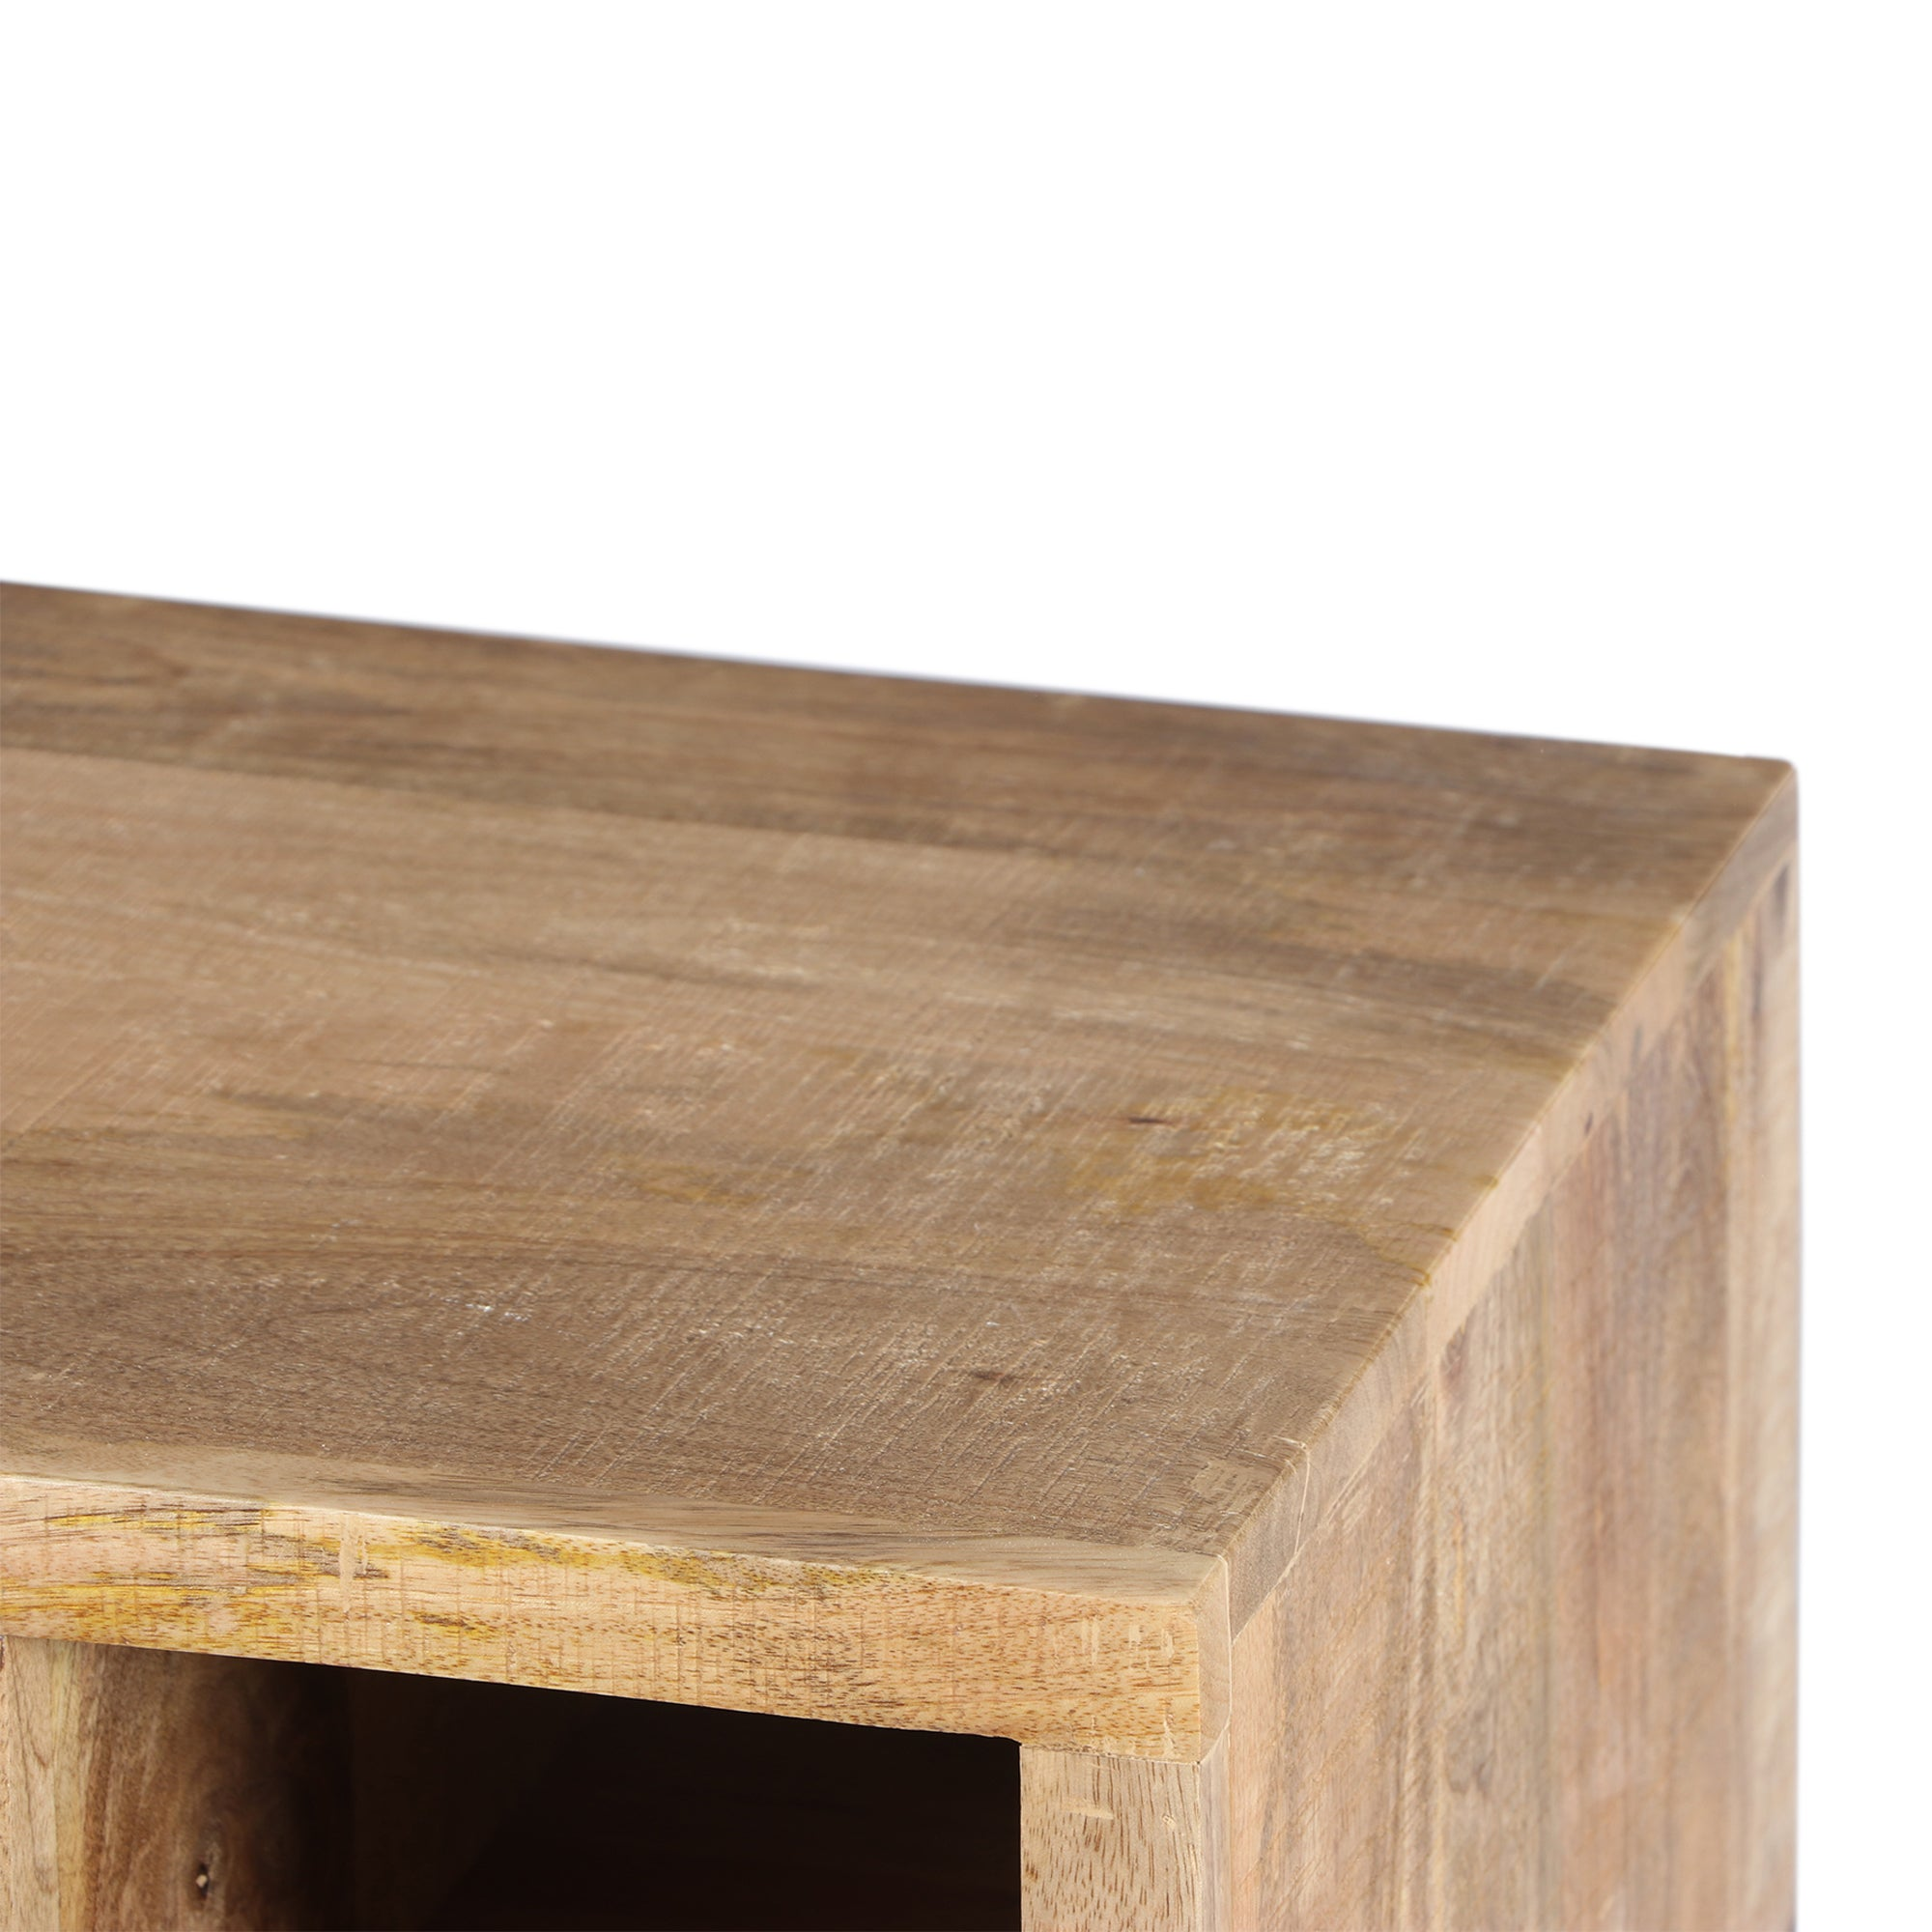 The Urban Port UPT-195279 Mango Wood Side Table with Open Cubbies